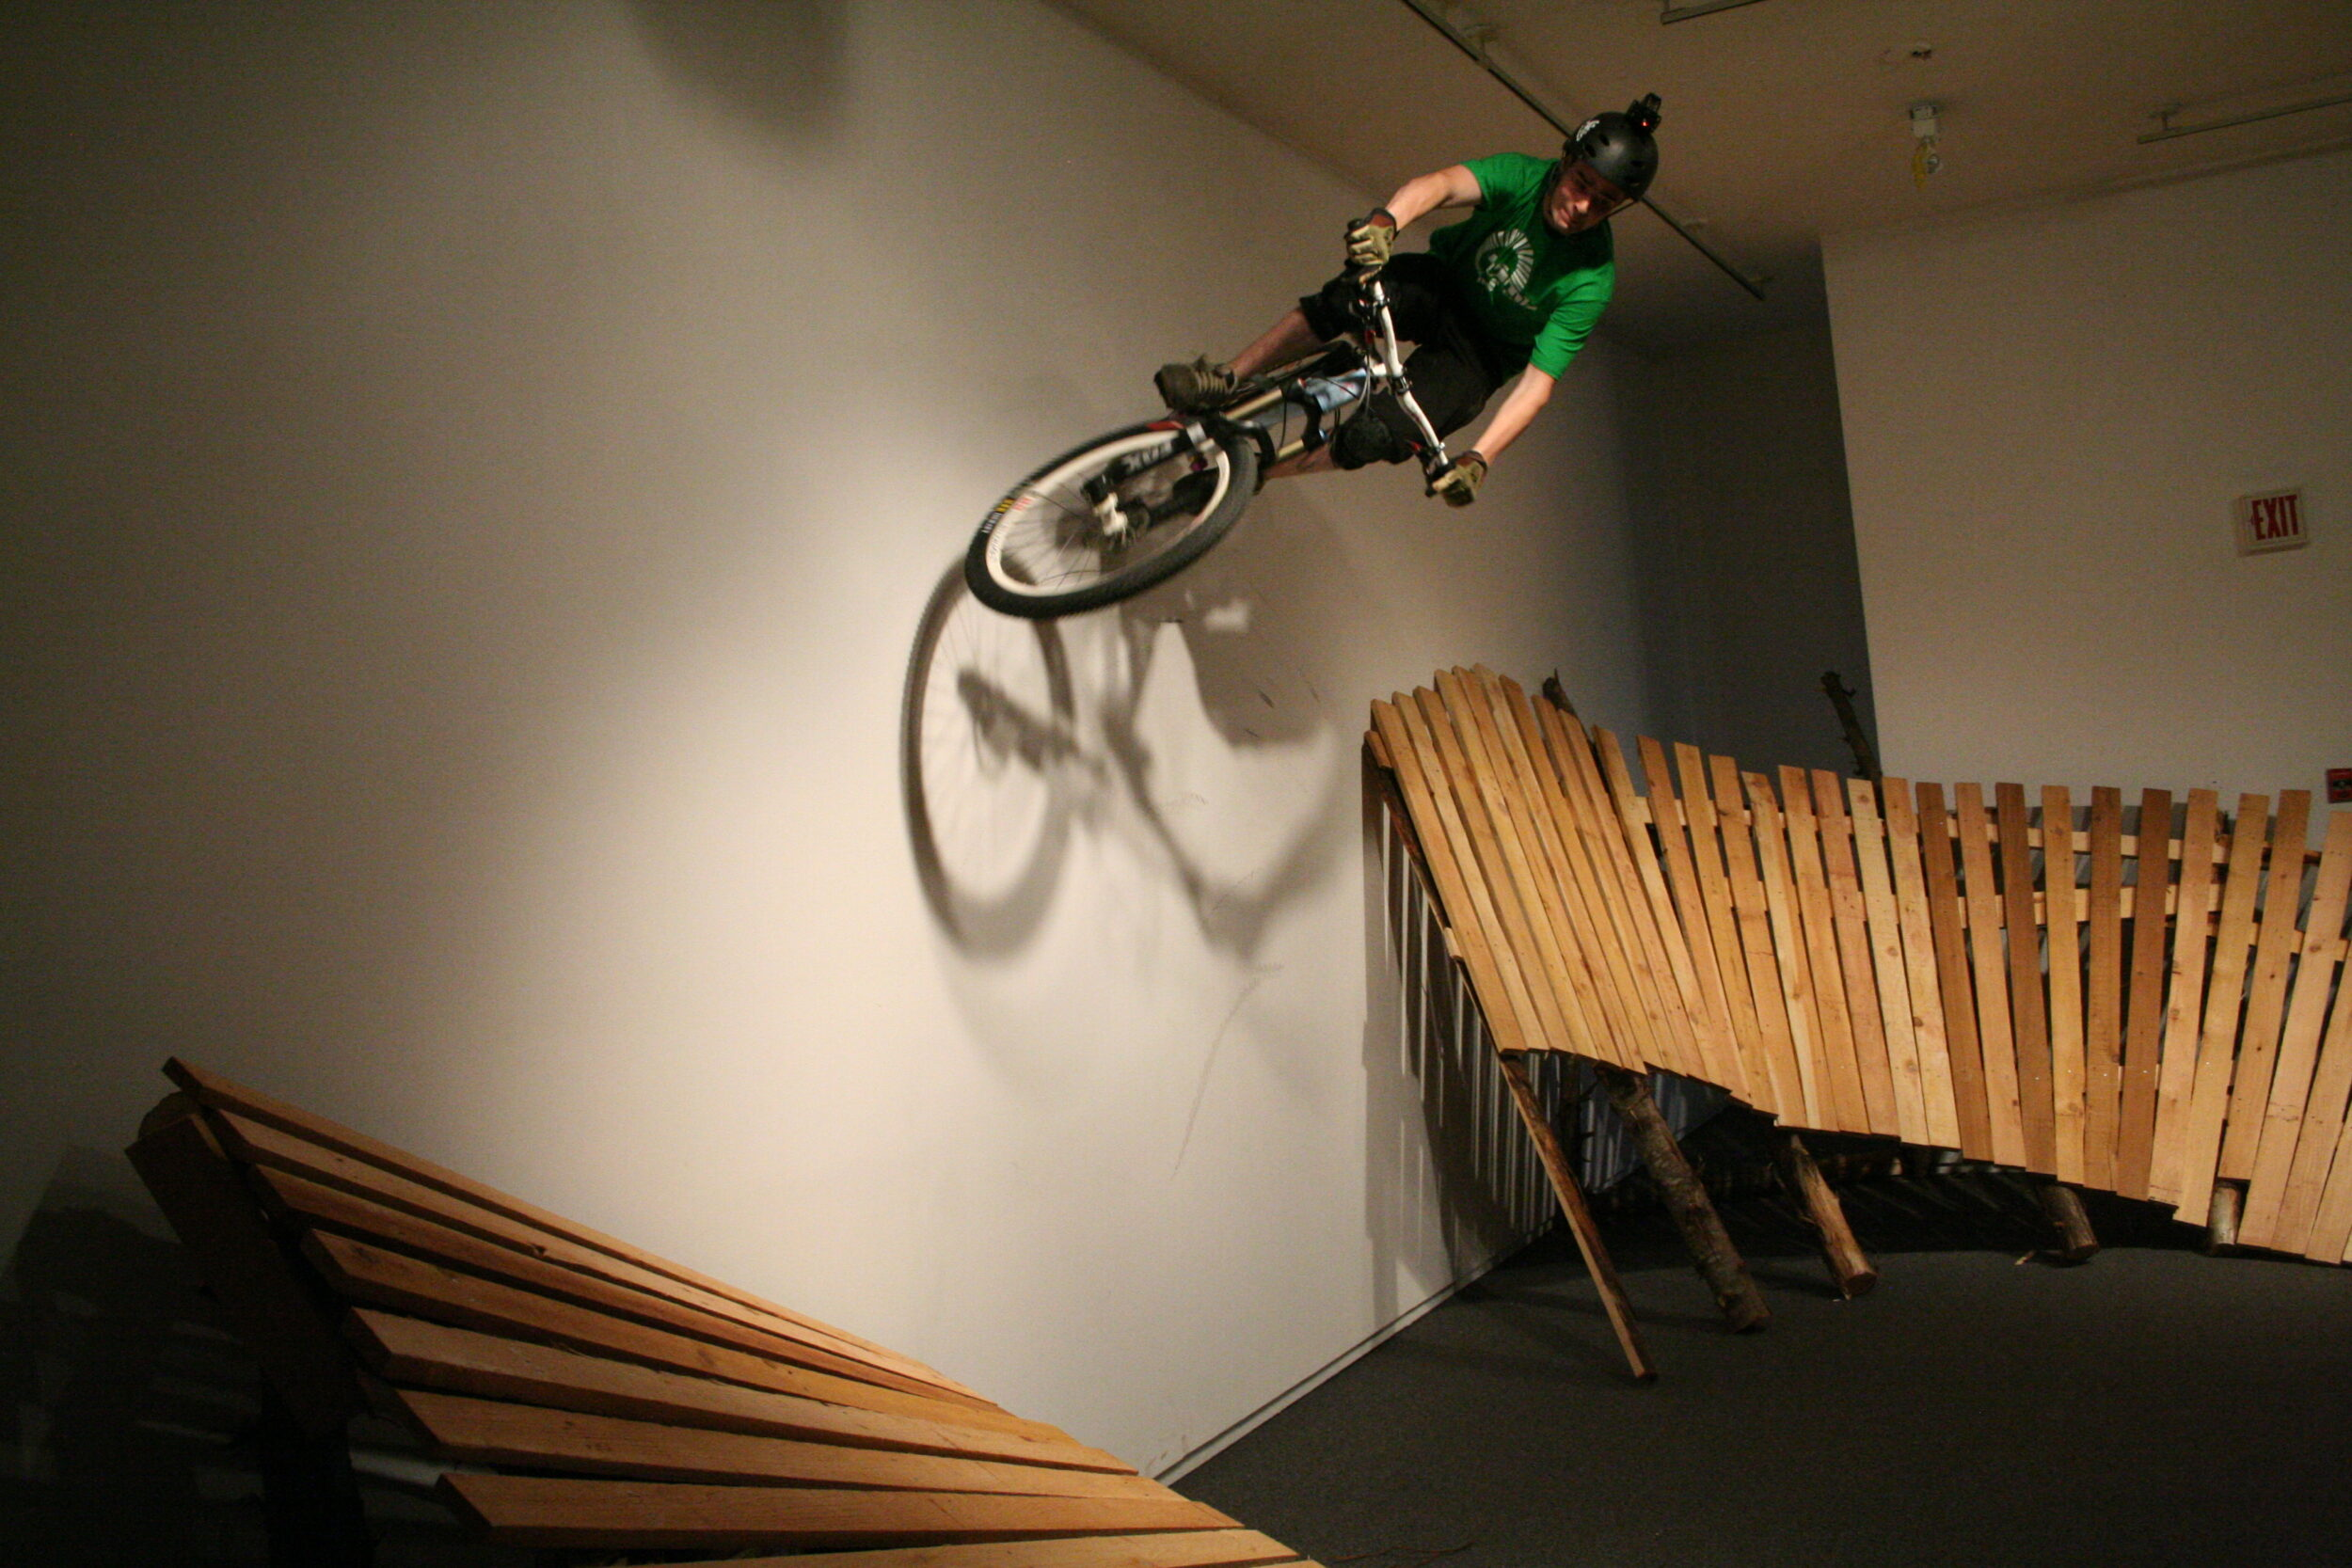 Mountain bike performance during the Flow exhibition.